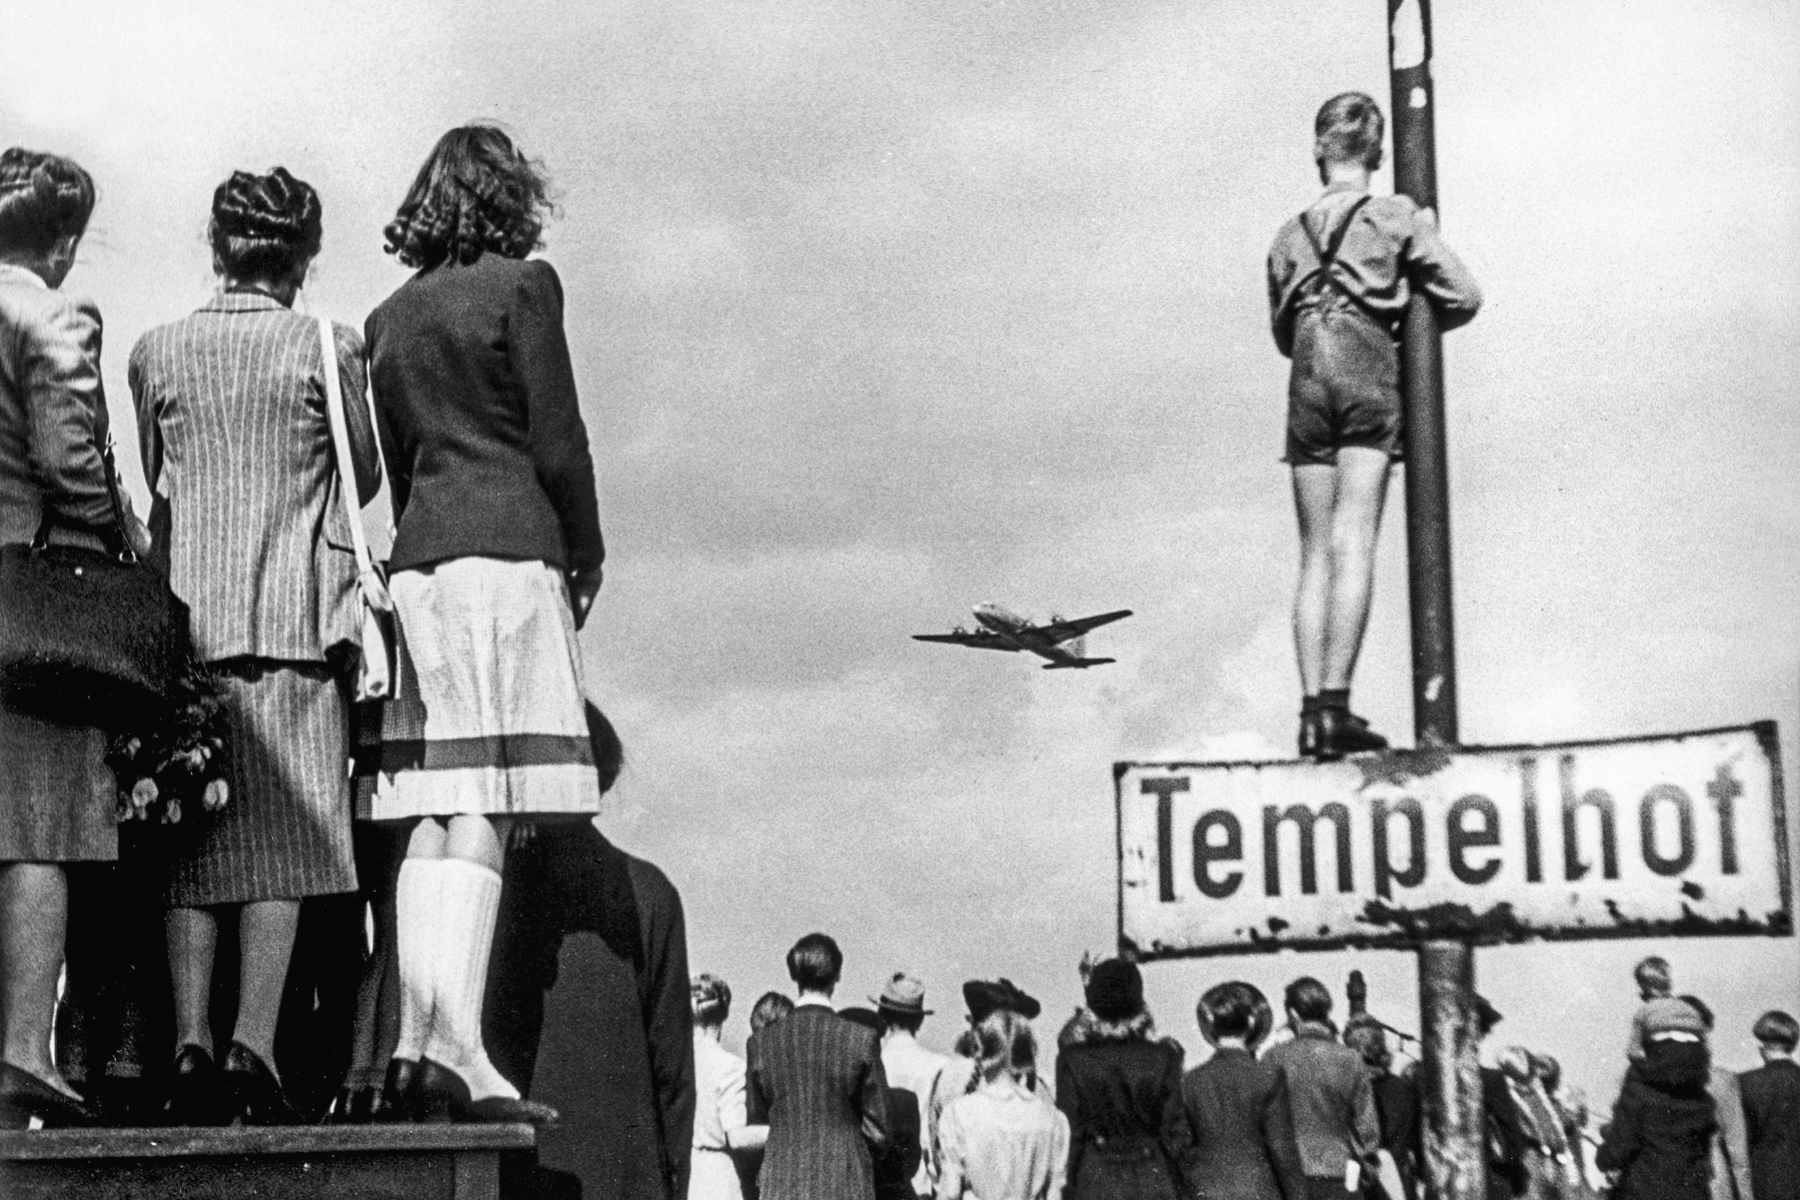 At Tempelhof airport, Berliners watching aeroplanes during the airlift during the blockade of Berlin, 1948.